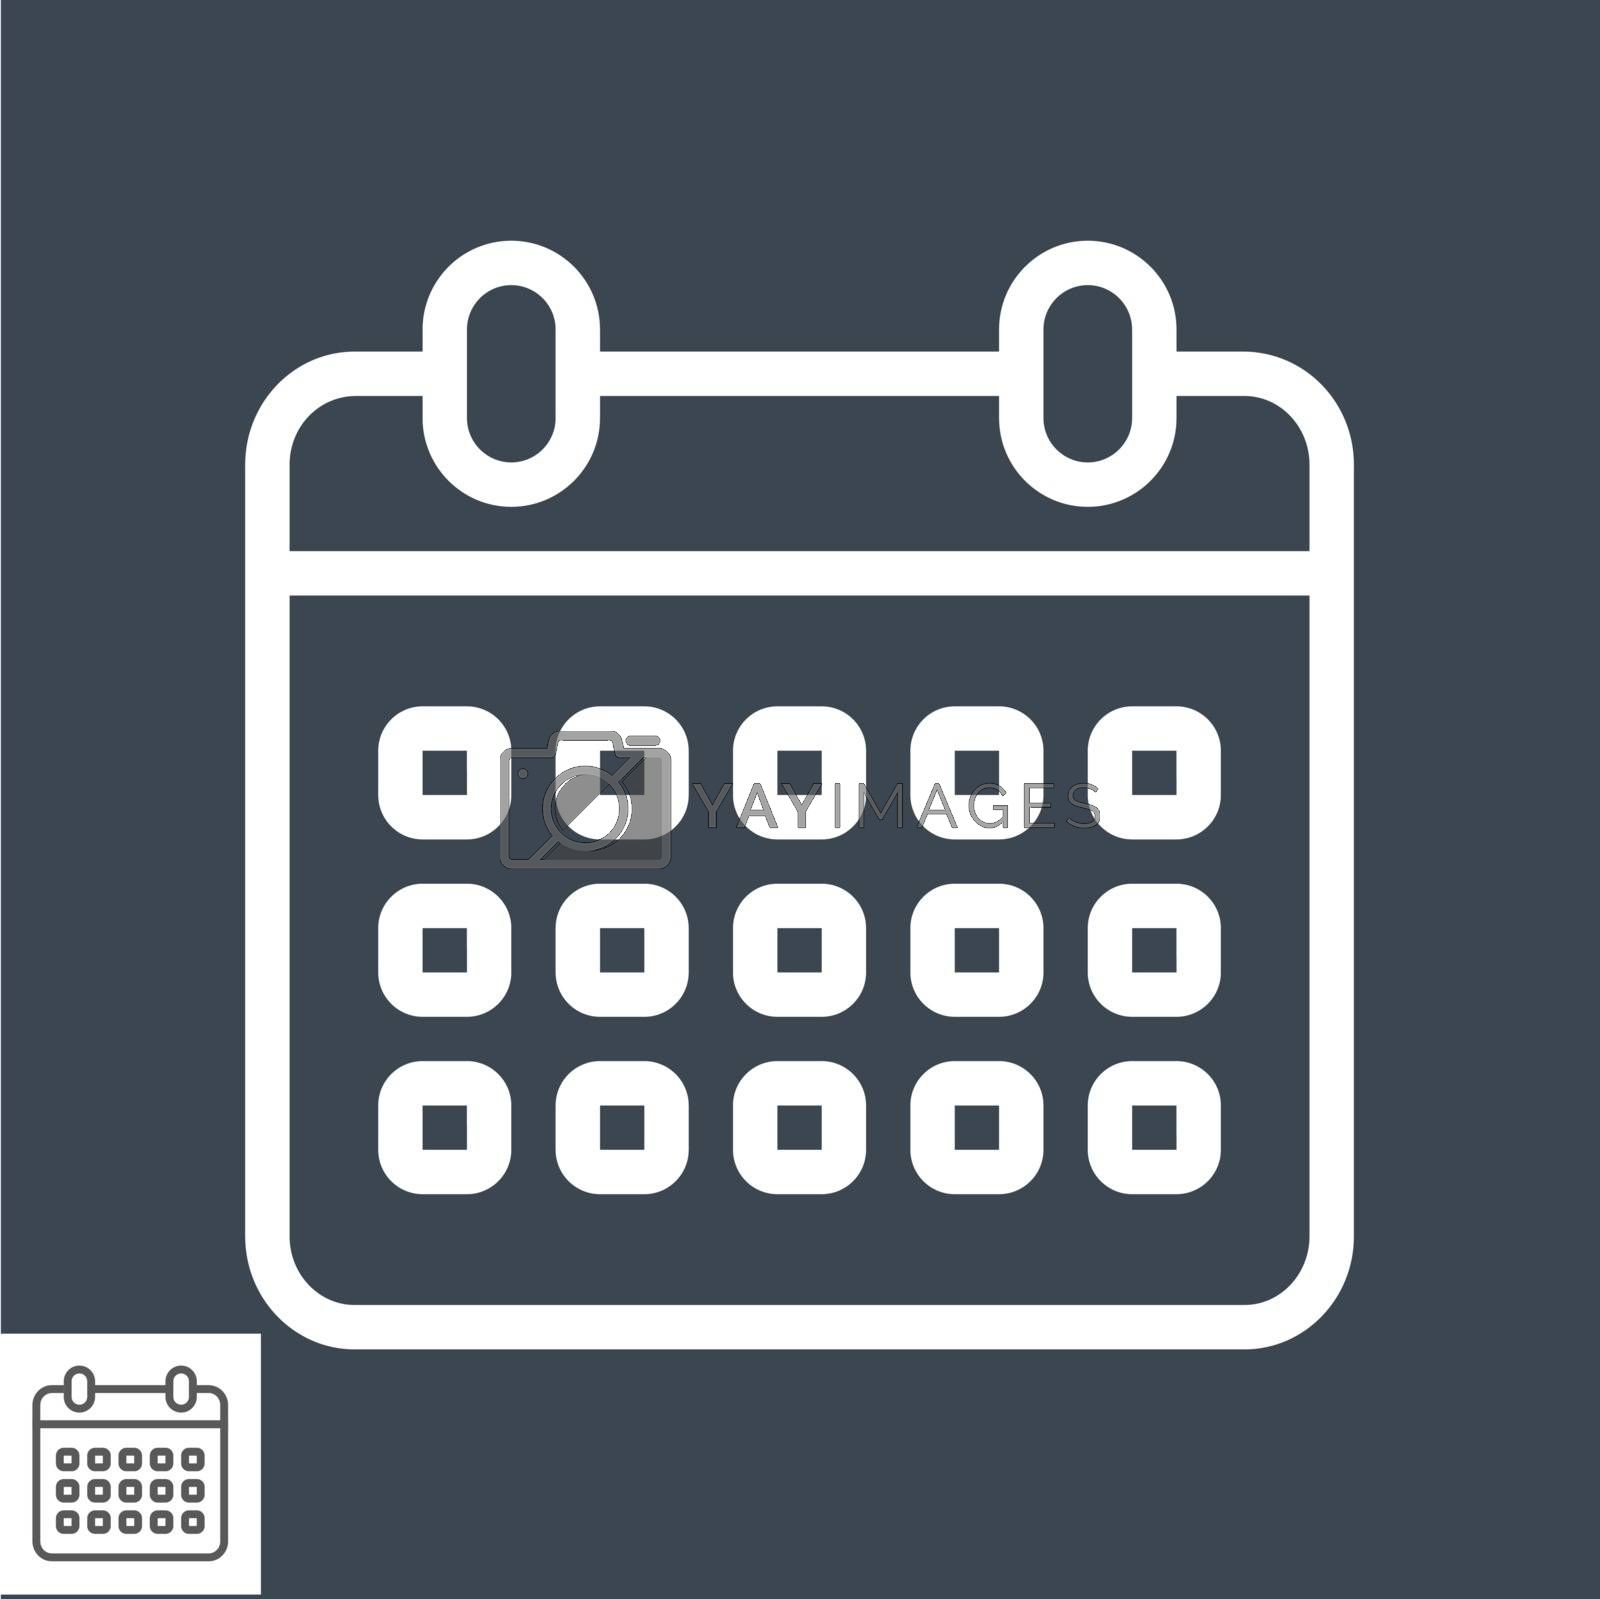 Calendar Thin Line Vector Icon. Flat icon isolated on the black background. Editable EPS file. Vector illustration.